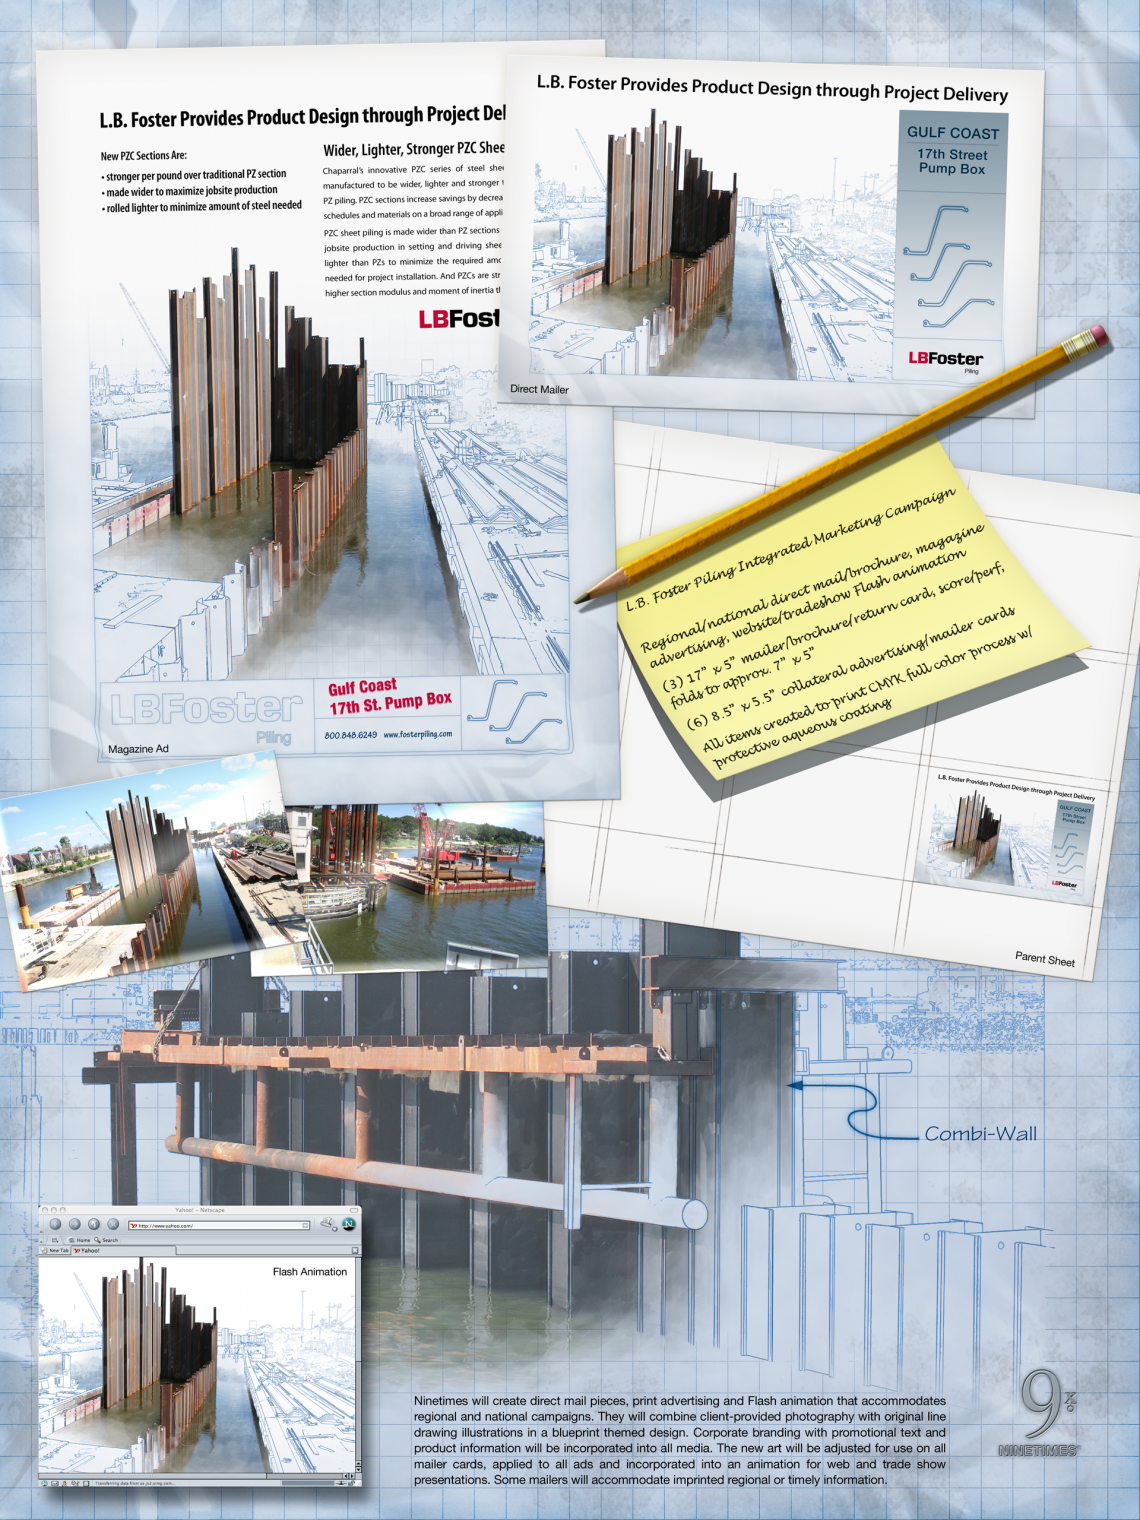 Sheet Piling marketing concept poster